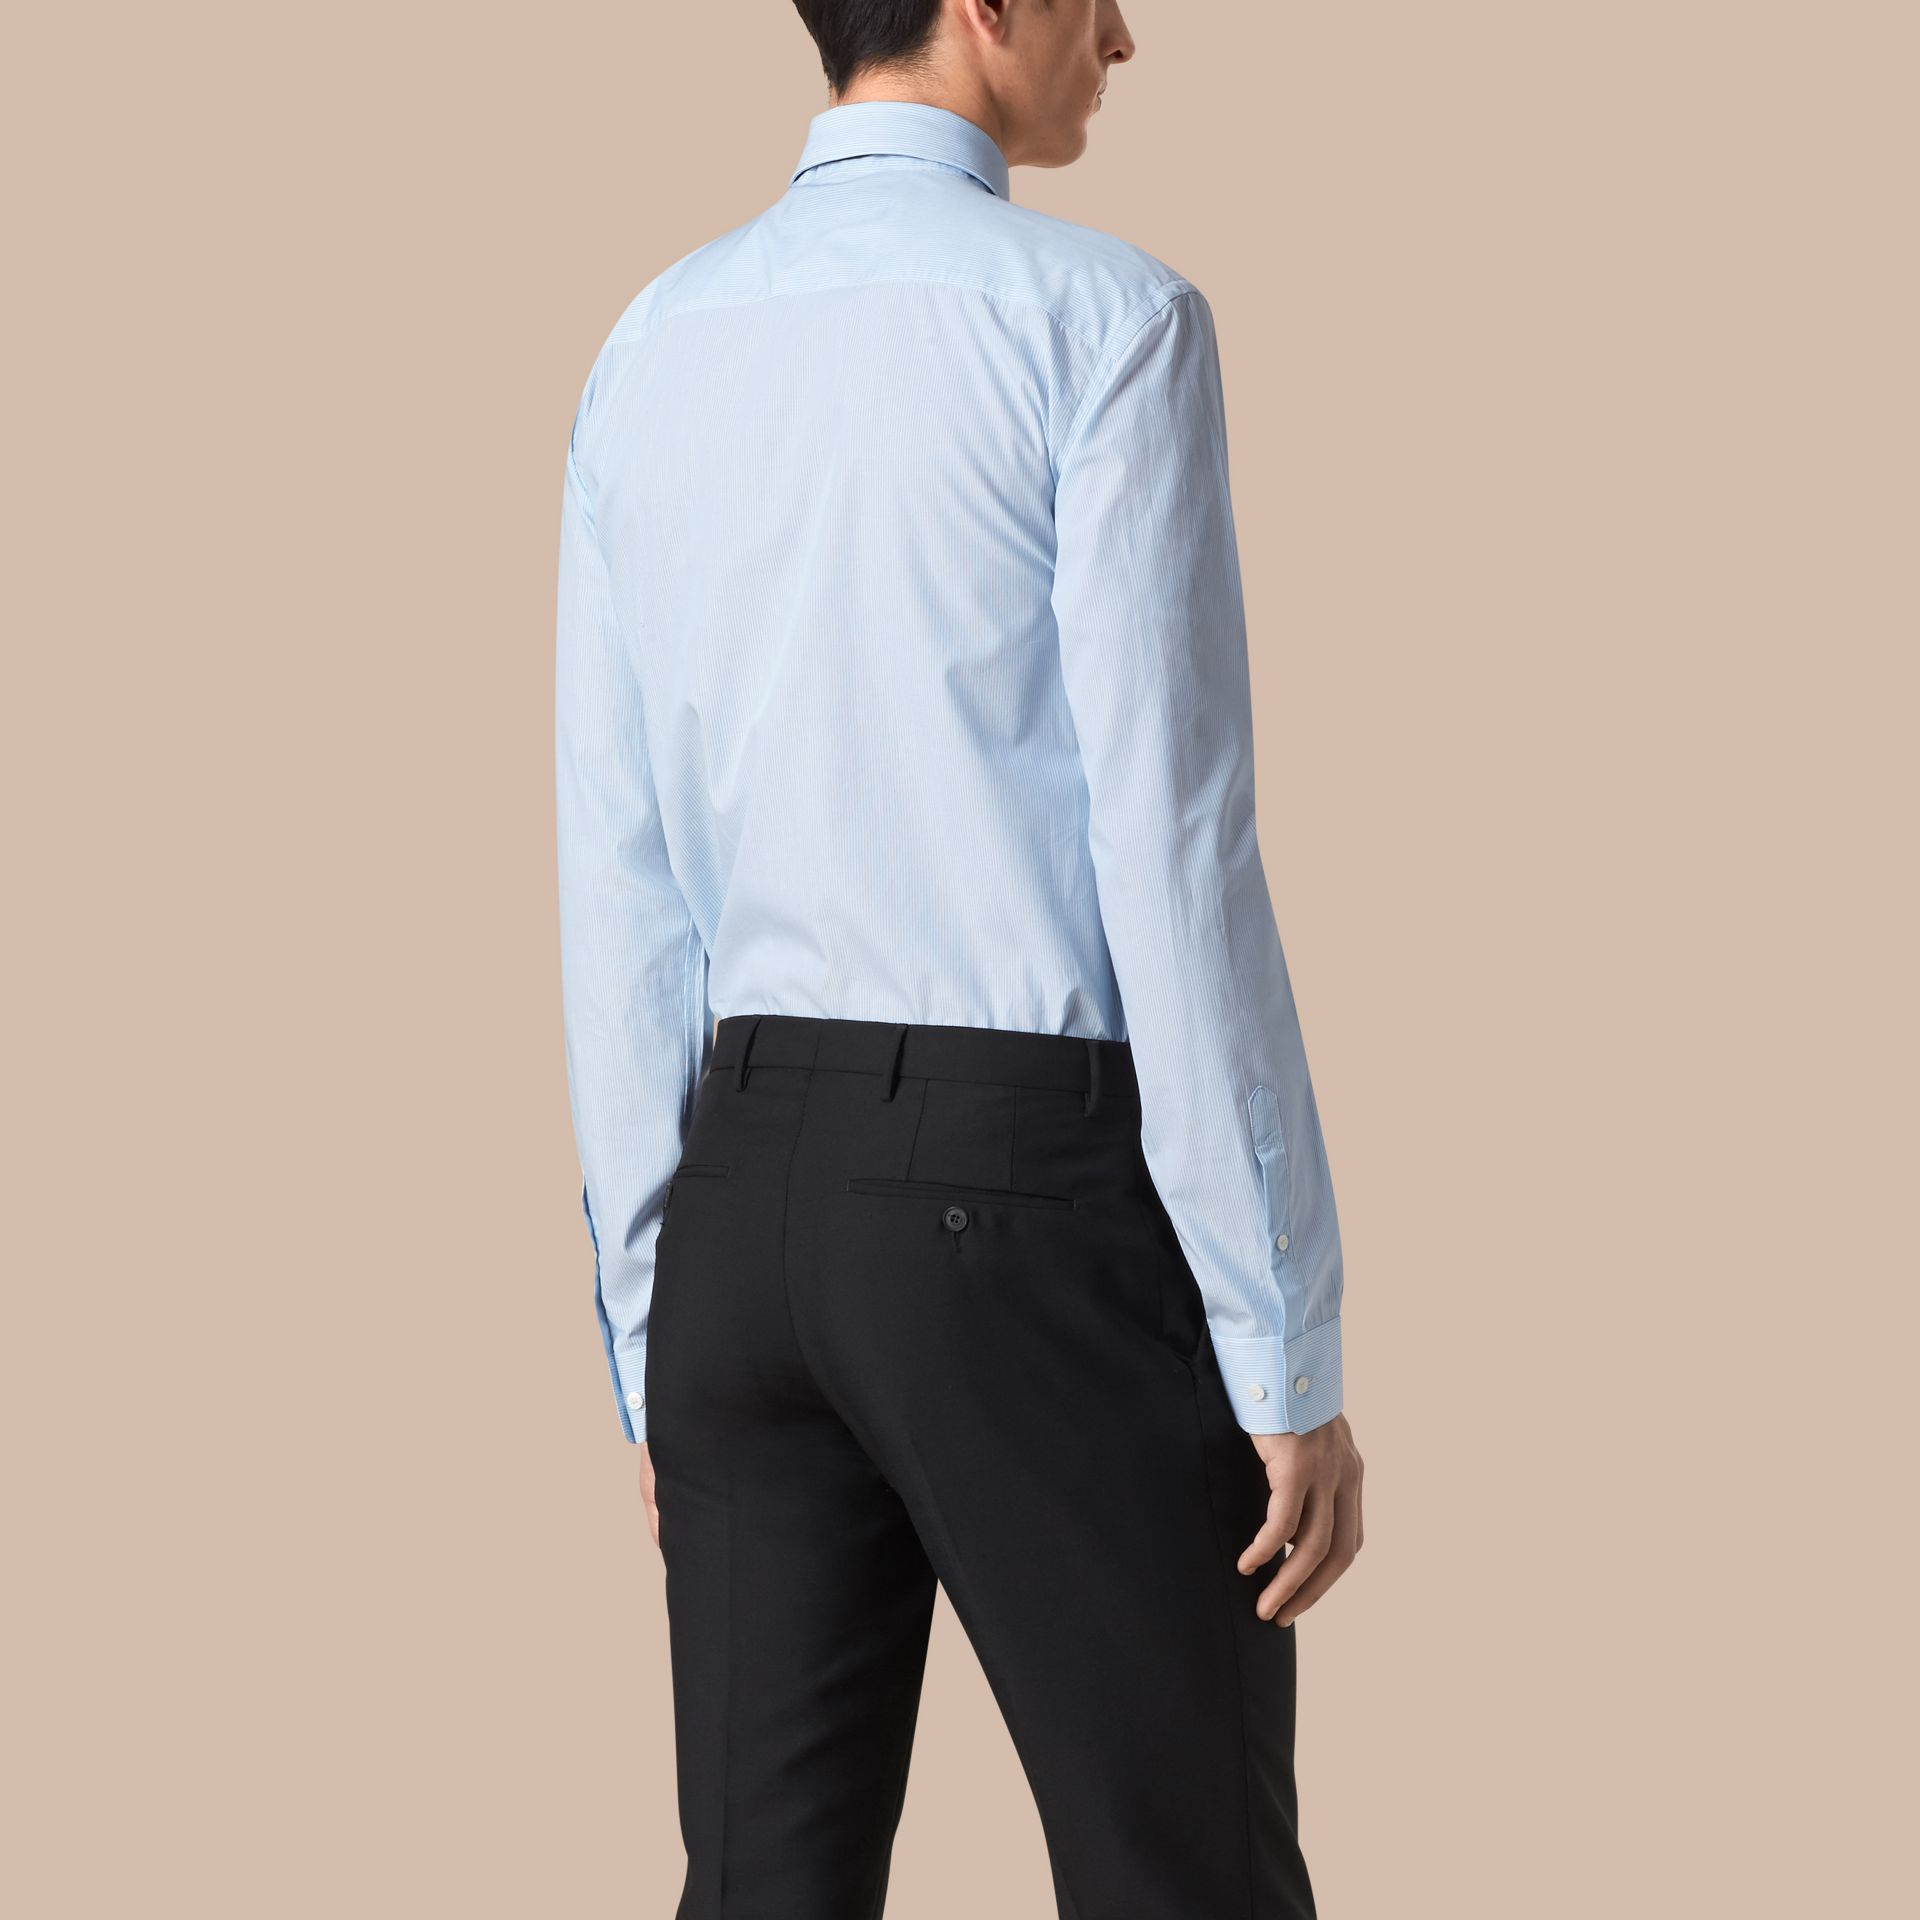 City blue Modern Fit Striped Cotton Poplin Shirt City Blue - gallery image 3